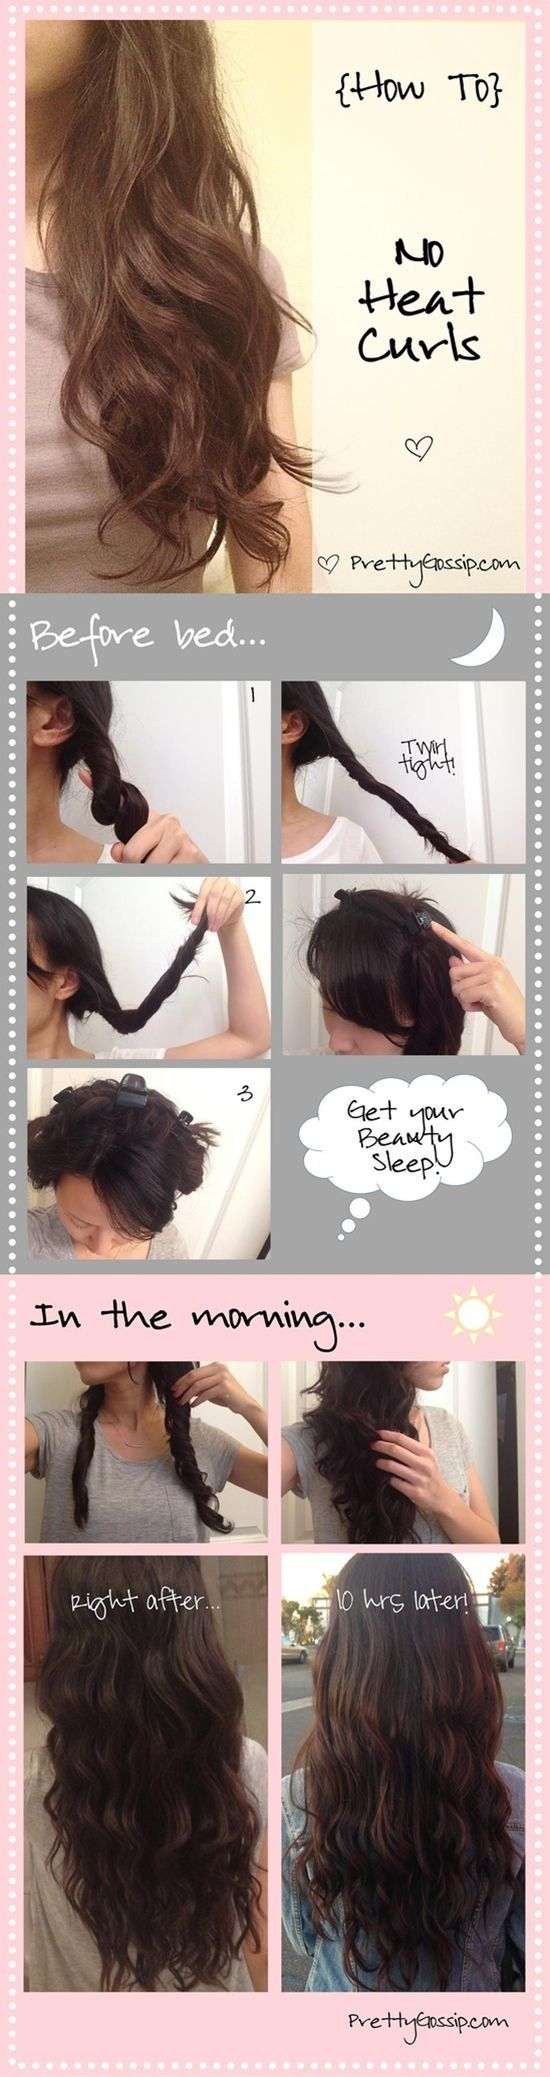 Must try this to get a different kind of curl.